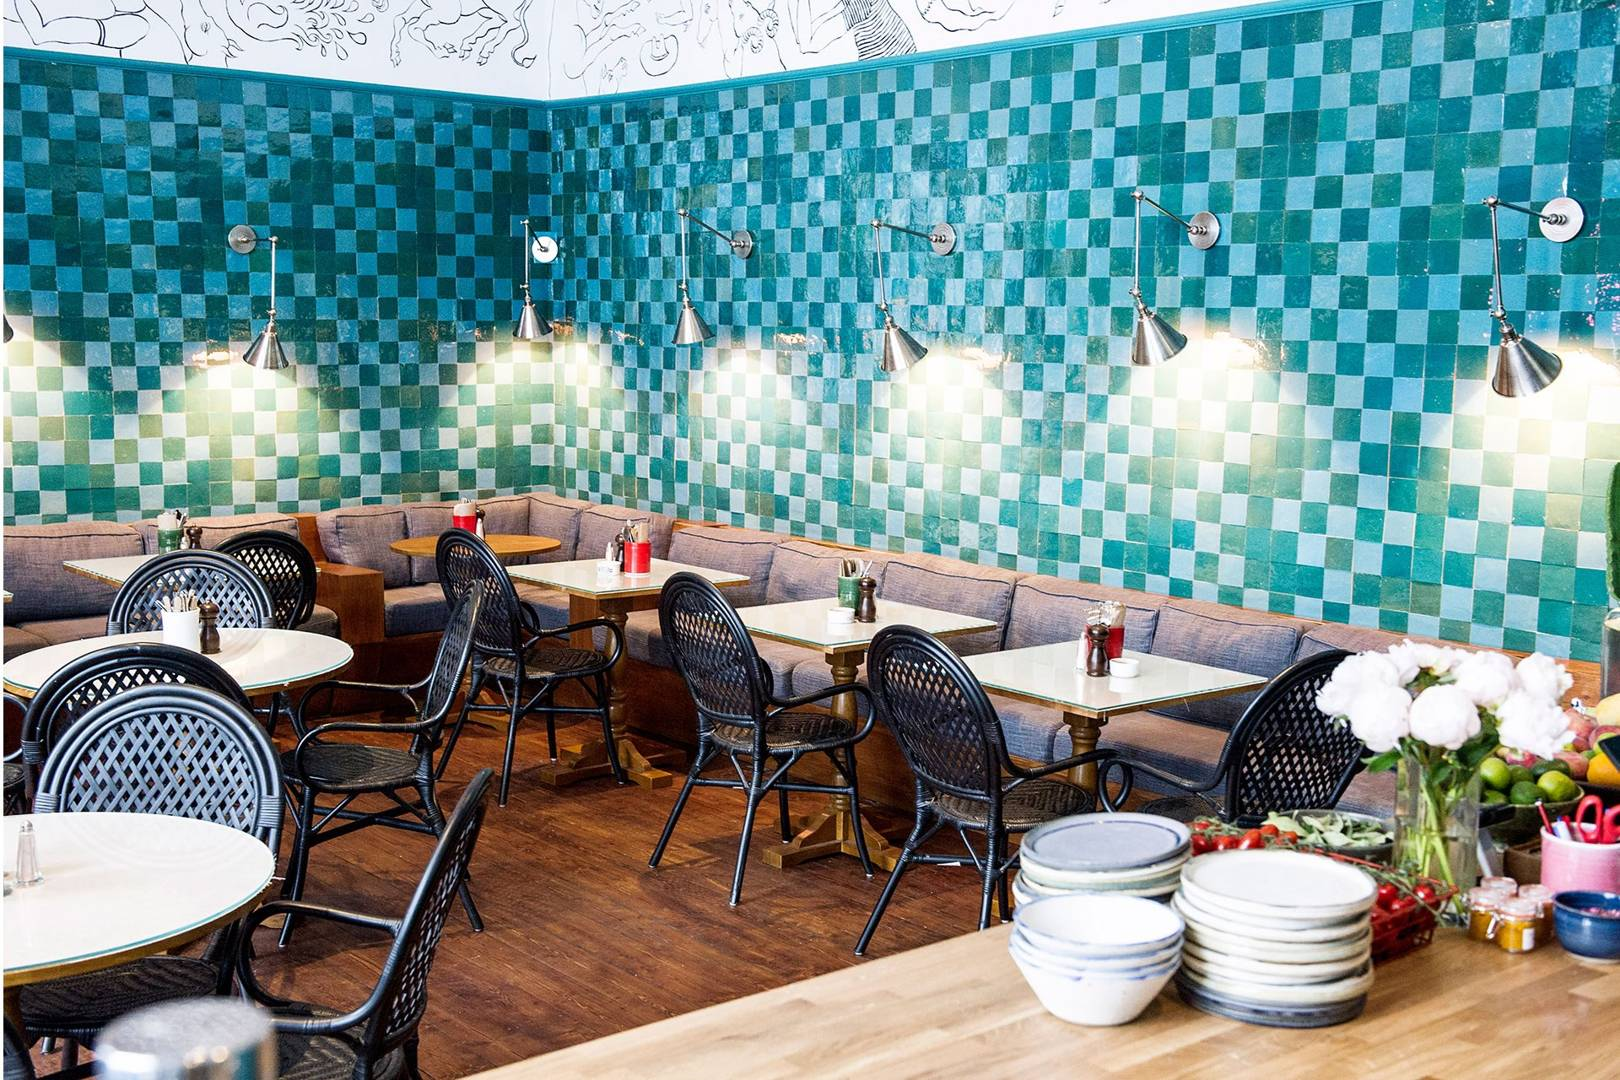 Where To Find The Best Brunch In London